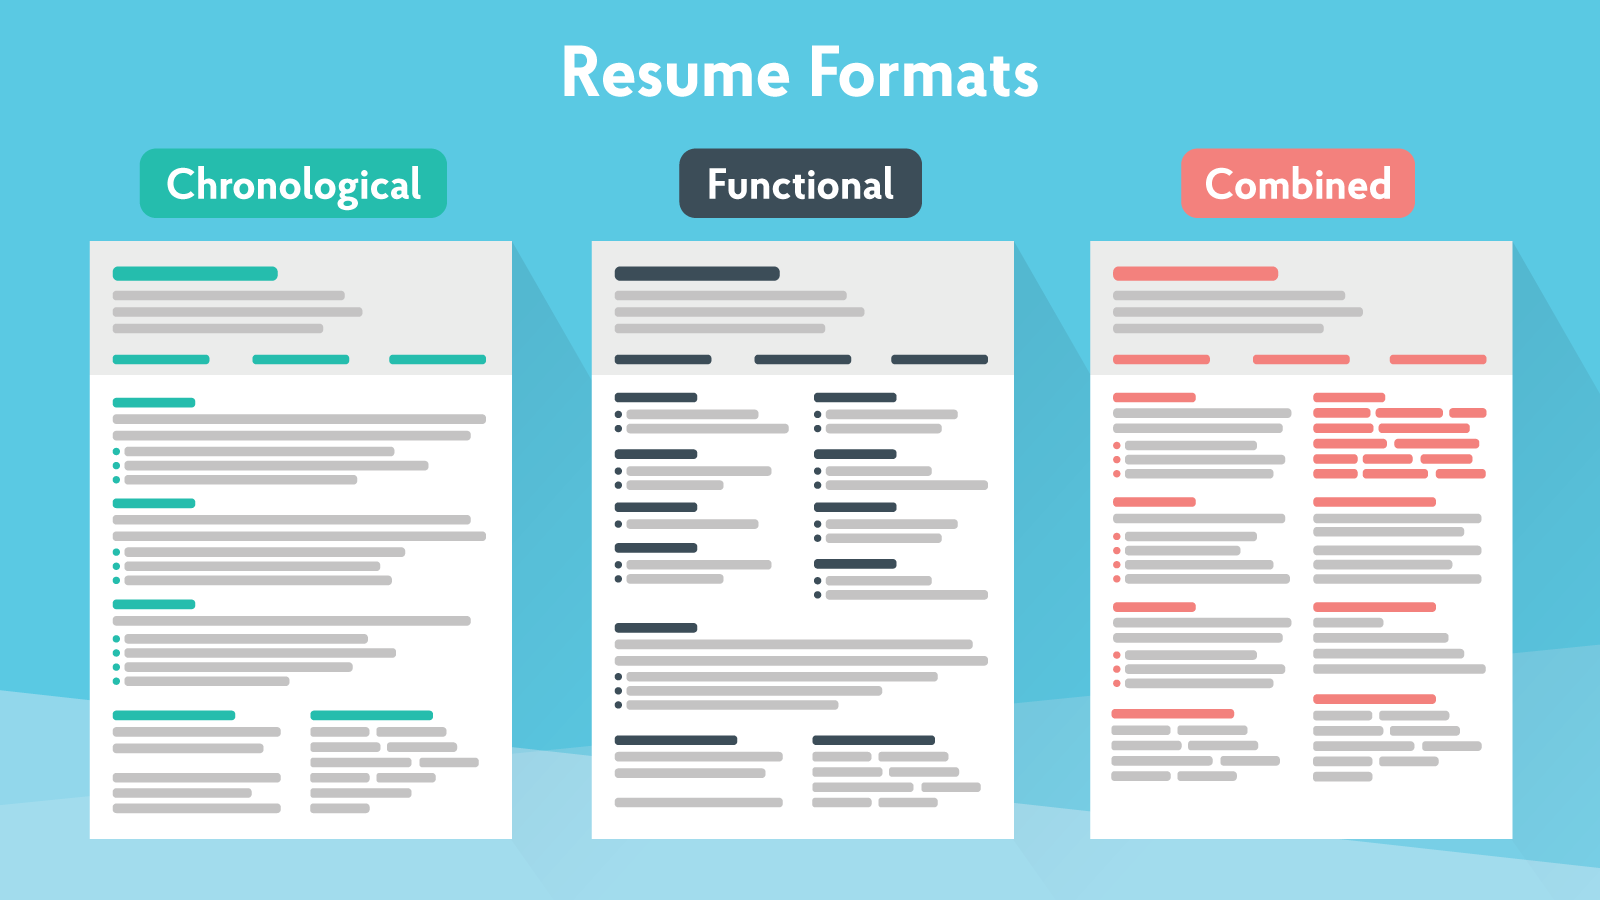 Resume Formats Guide: How to Pick the Best in 2018